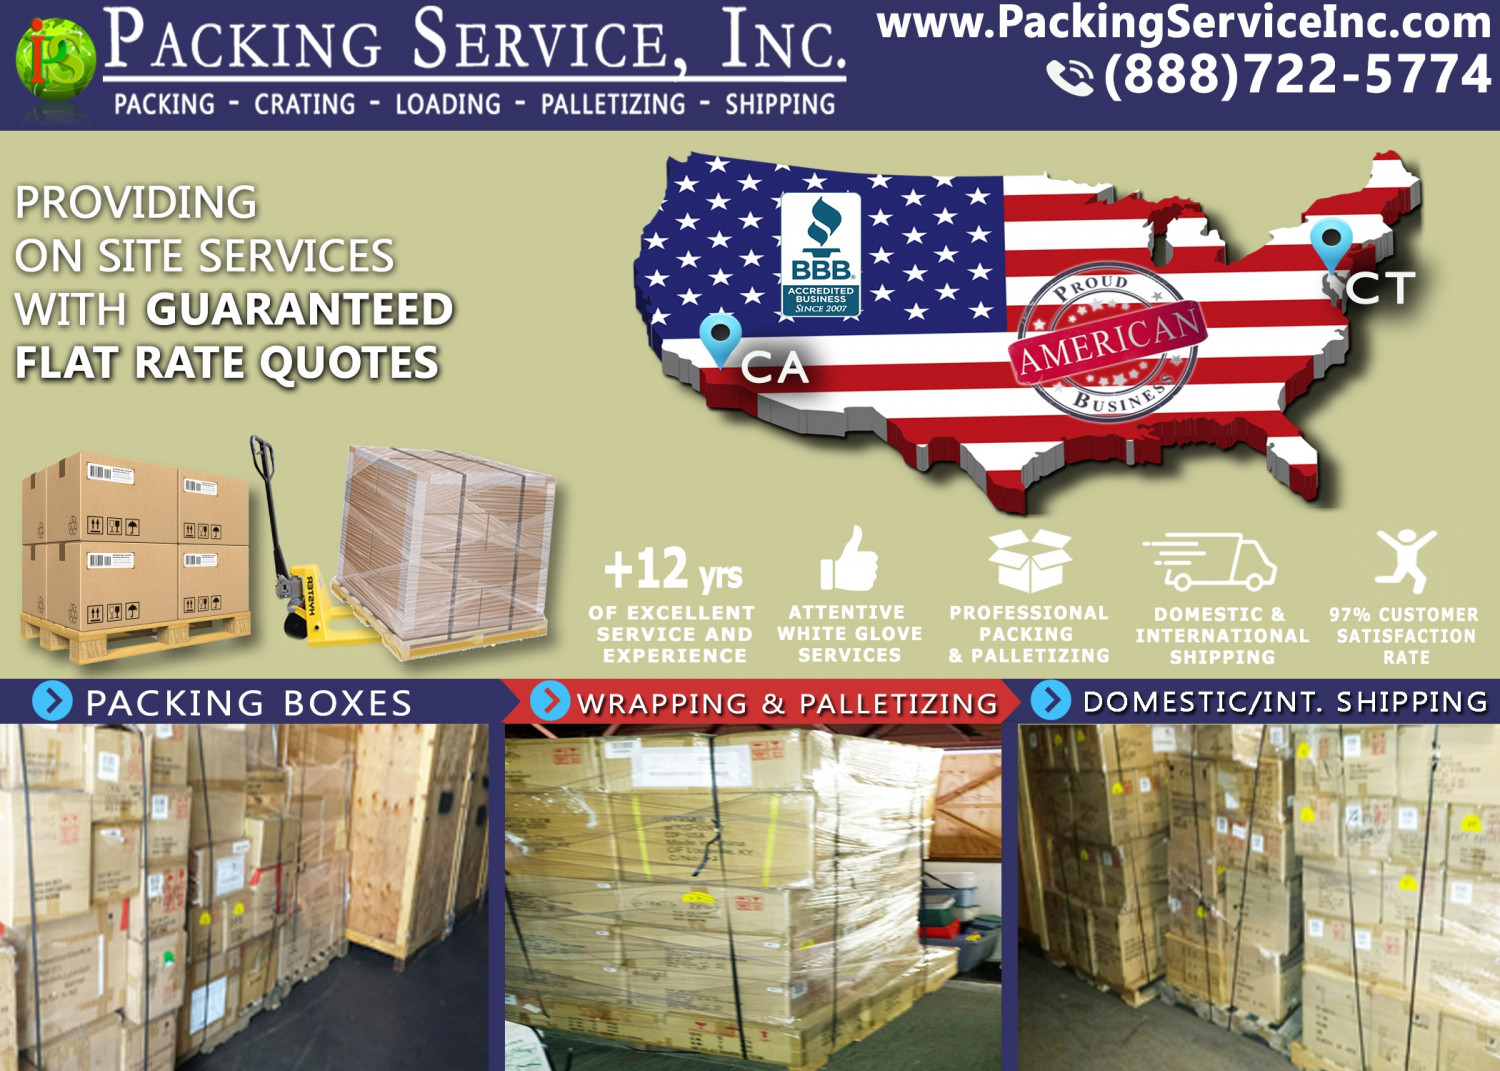 Packing Service, Inc. Swims through Shipping Recessions Infographic